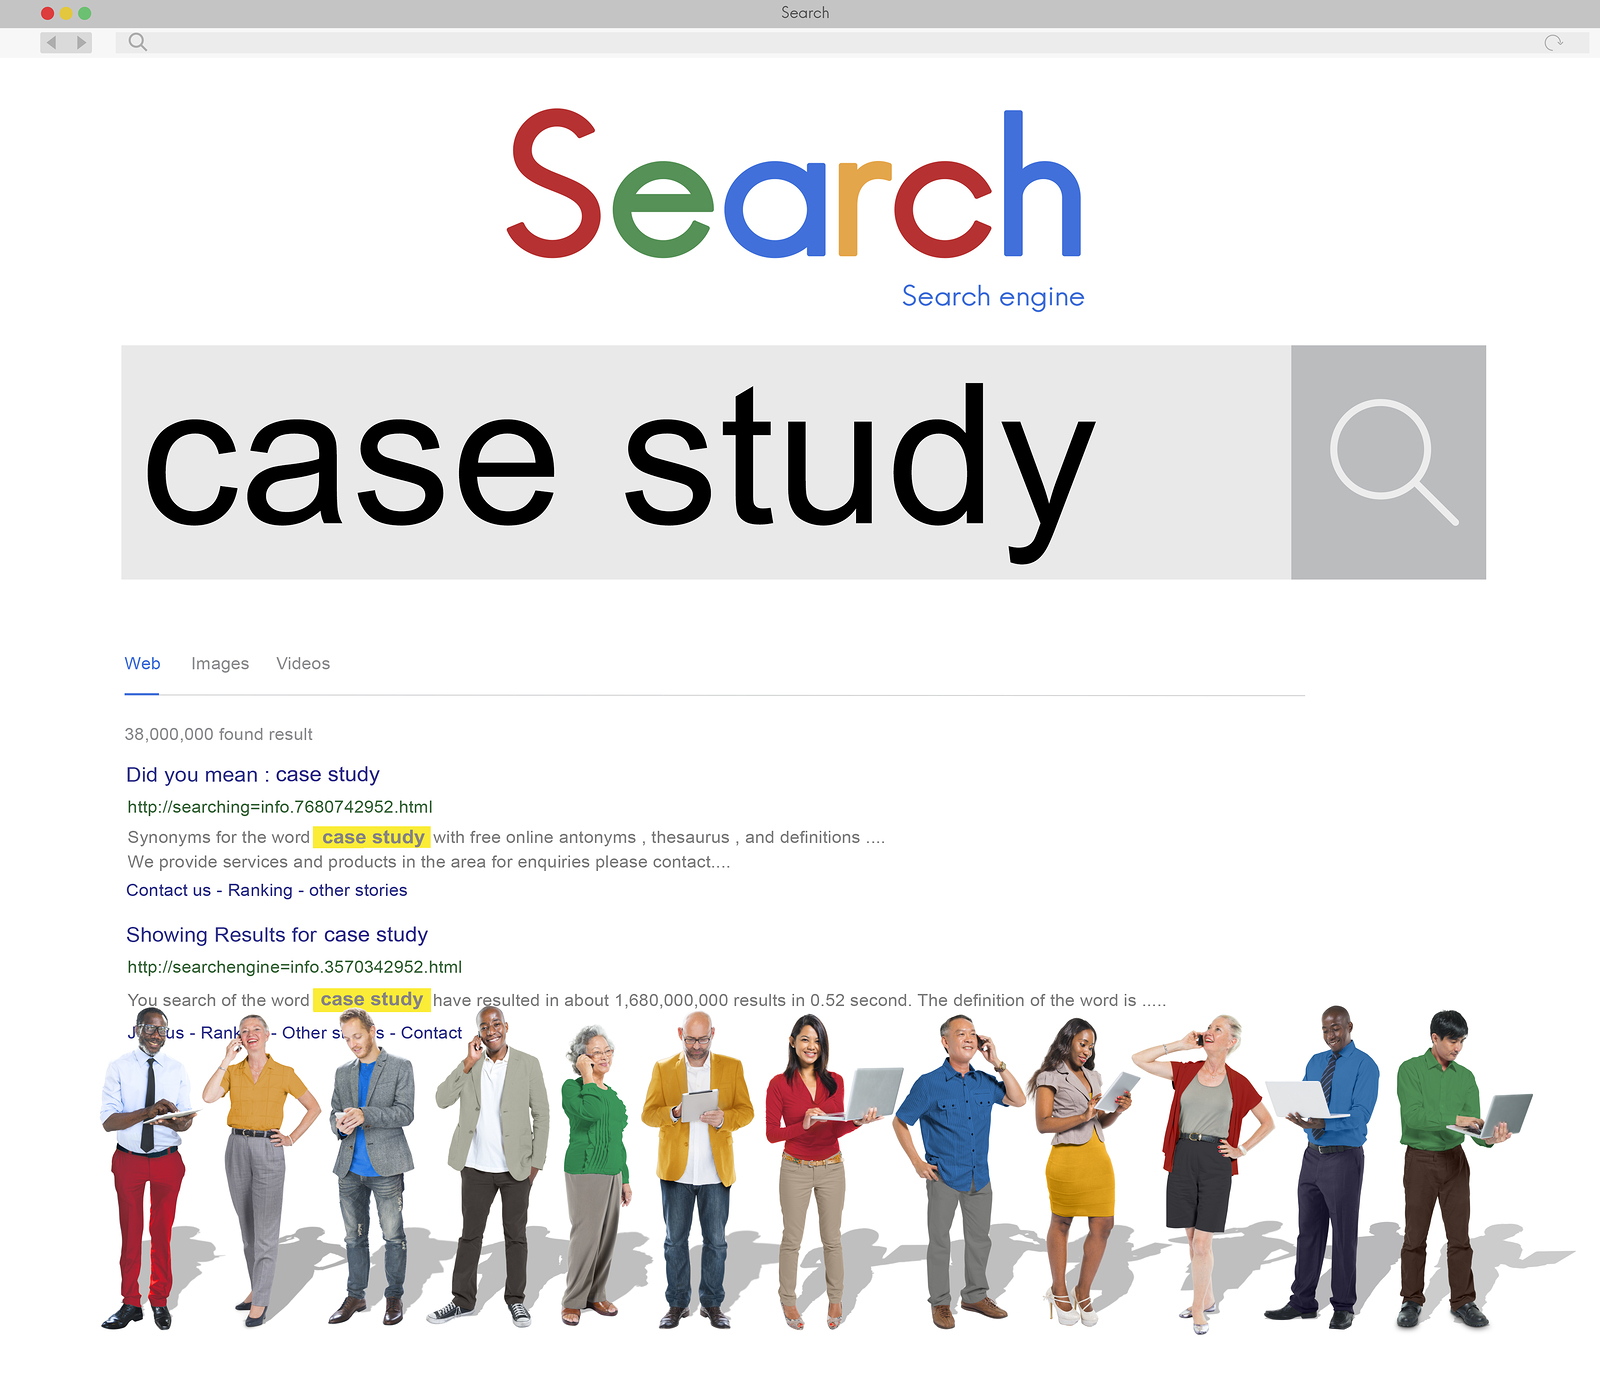 shaukat khanum case study Definition of case study: the new lawyers hired at the law firm were expected to review a case study similar to the case they were assigned to learn how more.